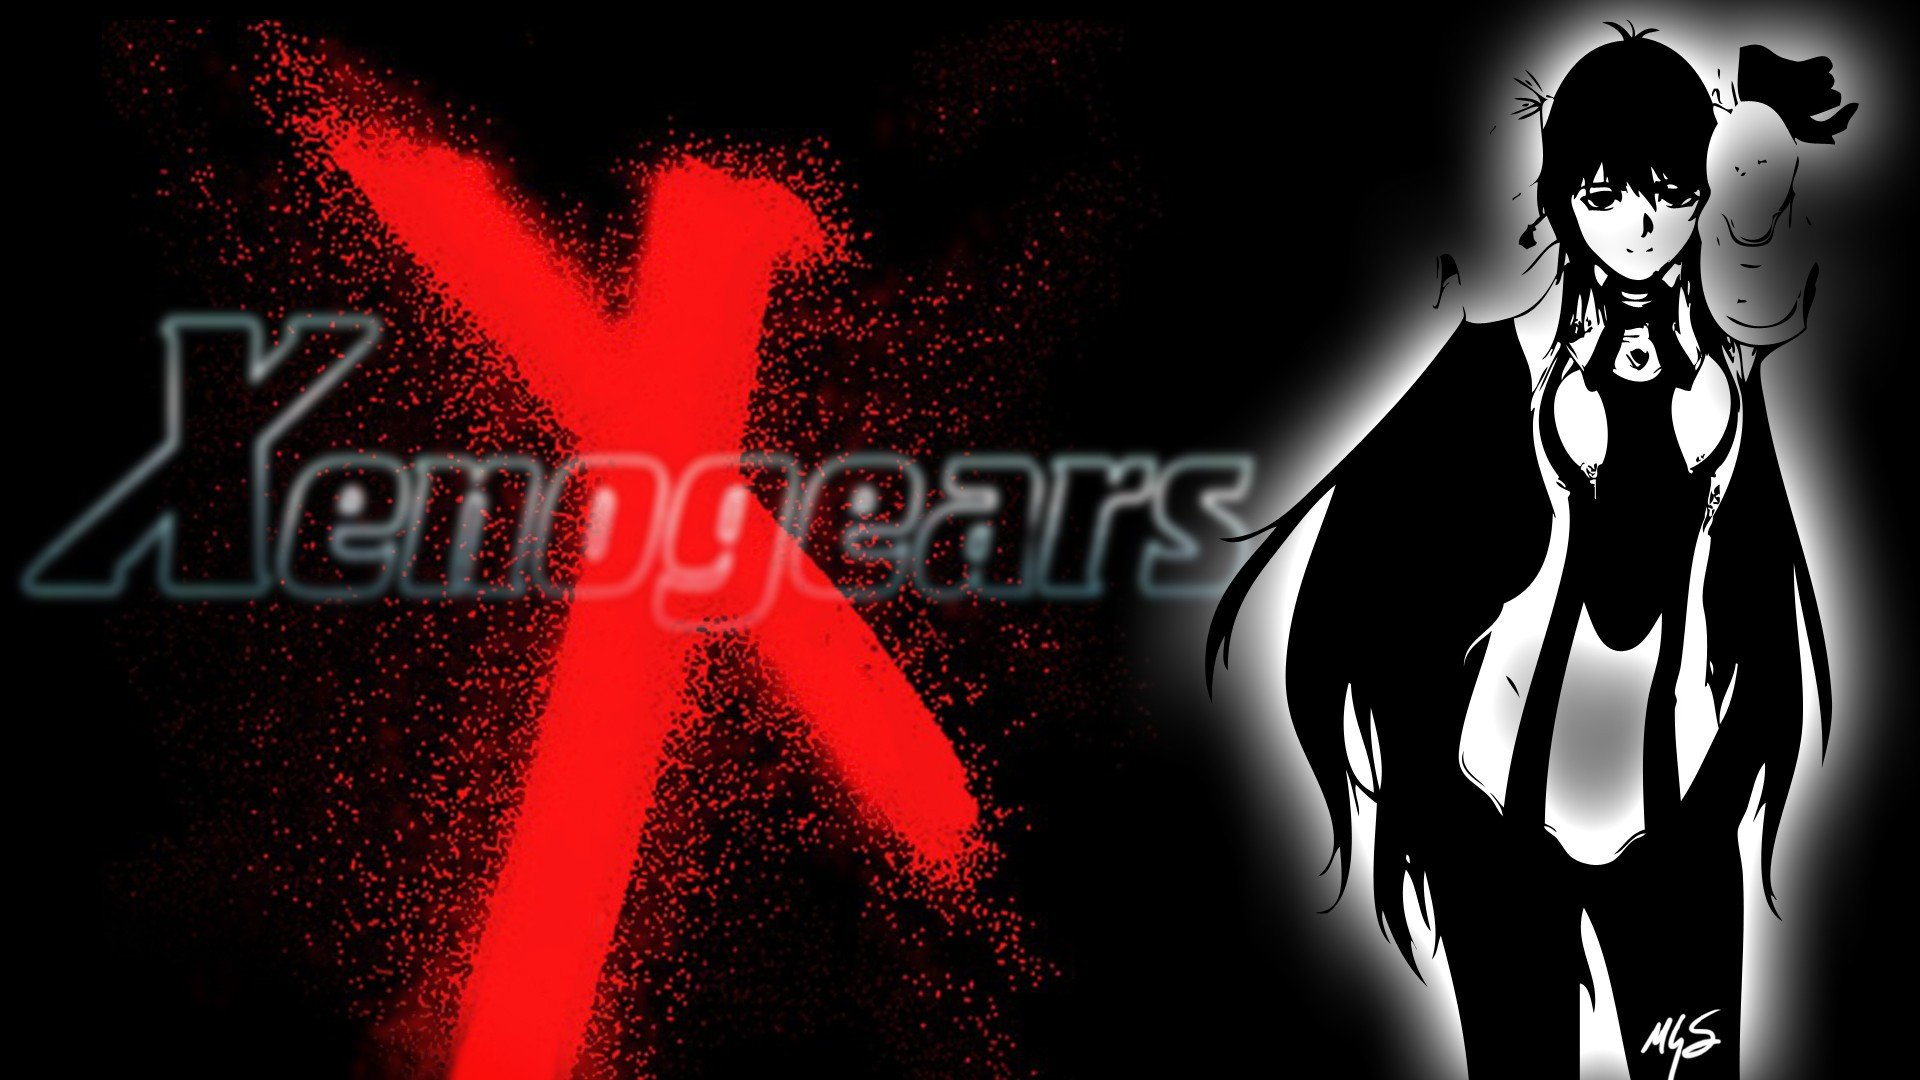 games RPG Xenogears anime Elhaym Van Houten Elly anime girls wallpaperXenogears Wallpaper